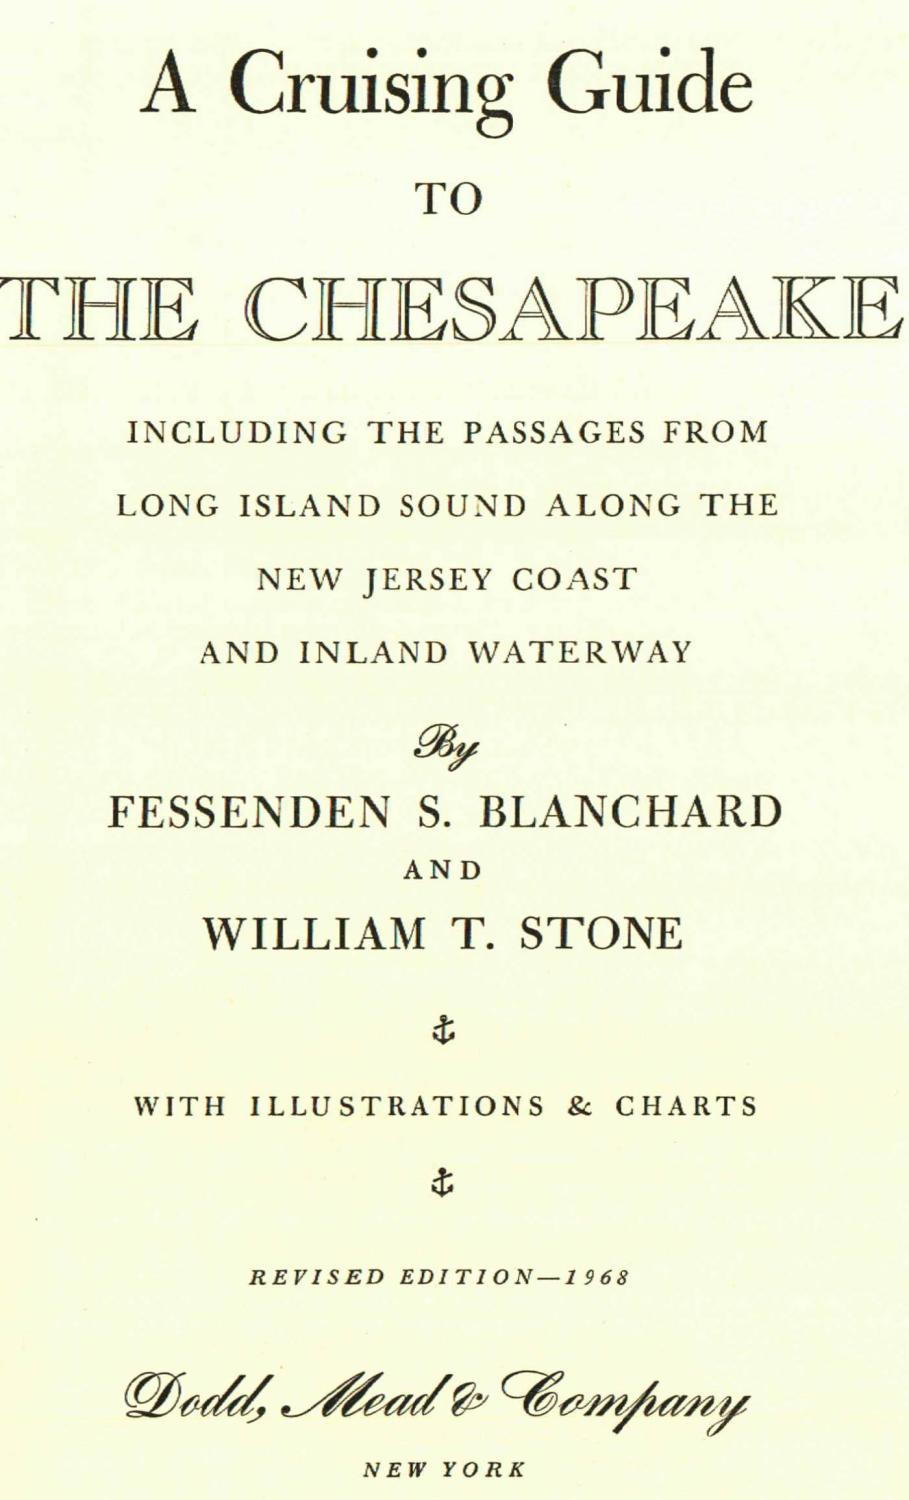 A cruising Guide to the Chesapeake: Fessenden S. Blanchard, et al